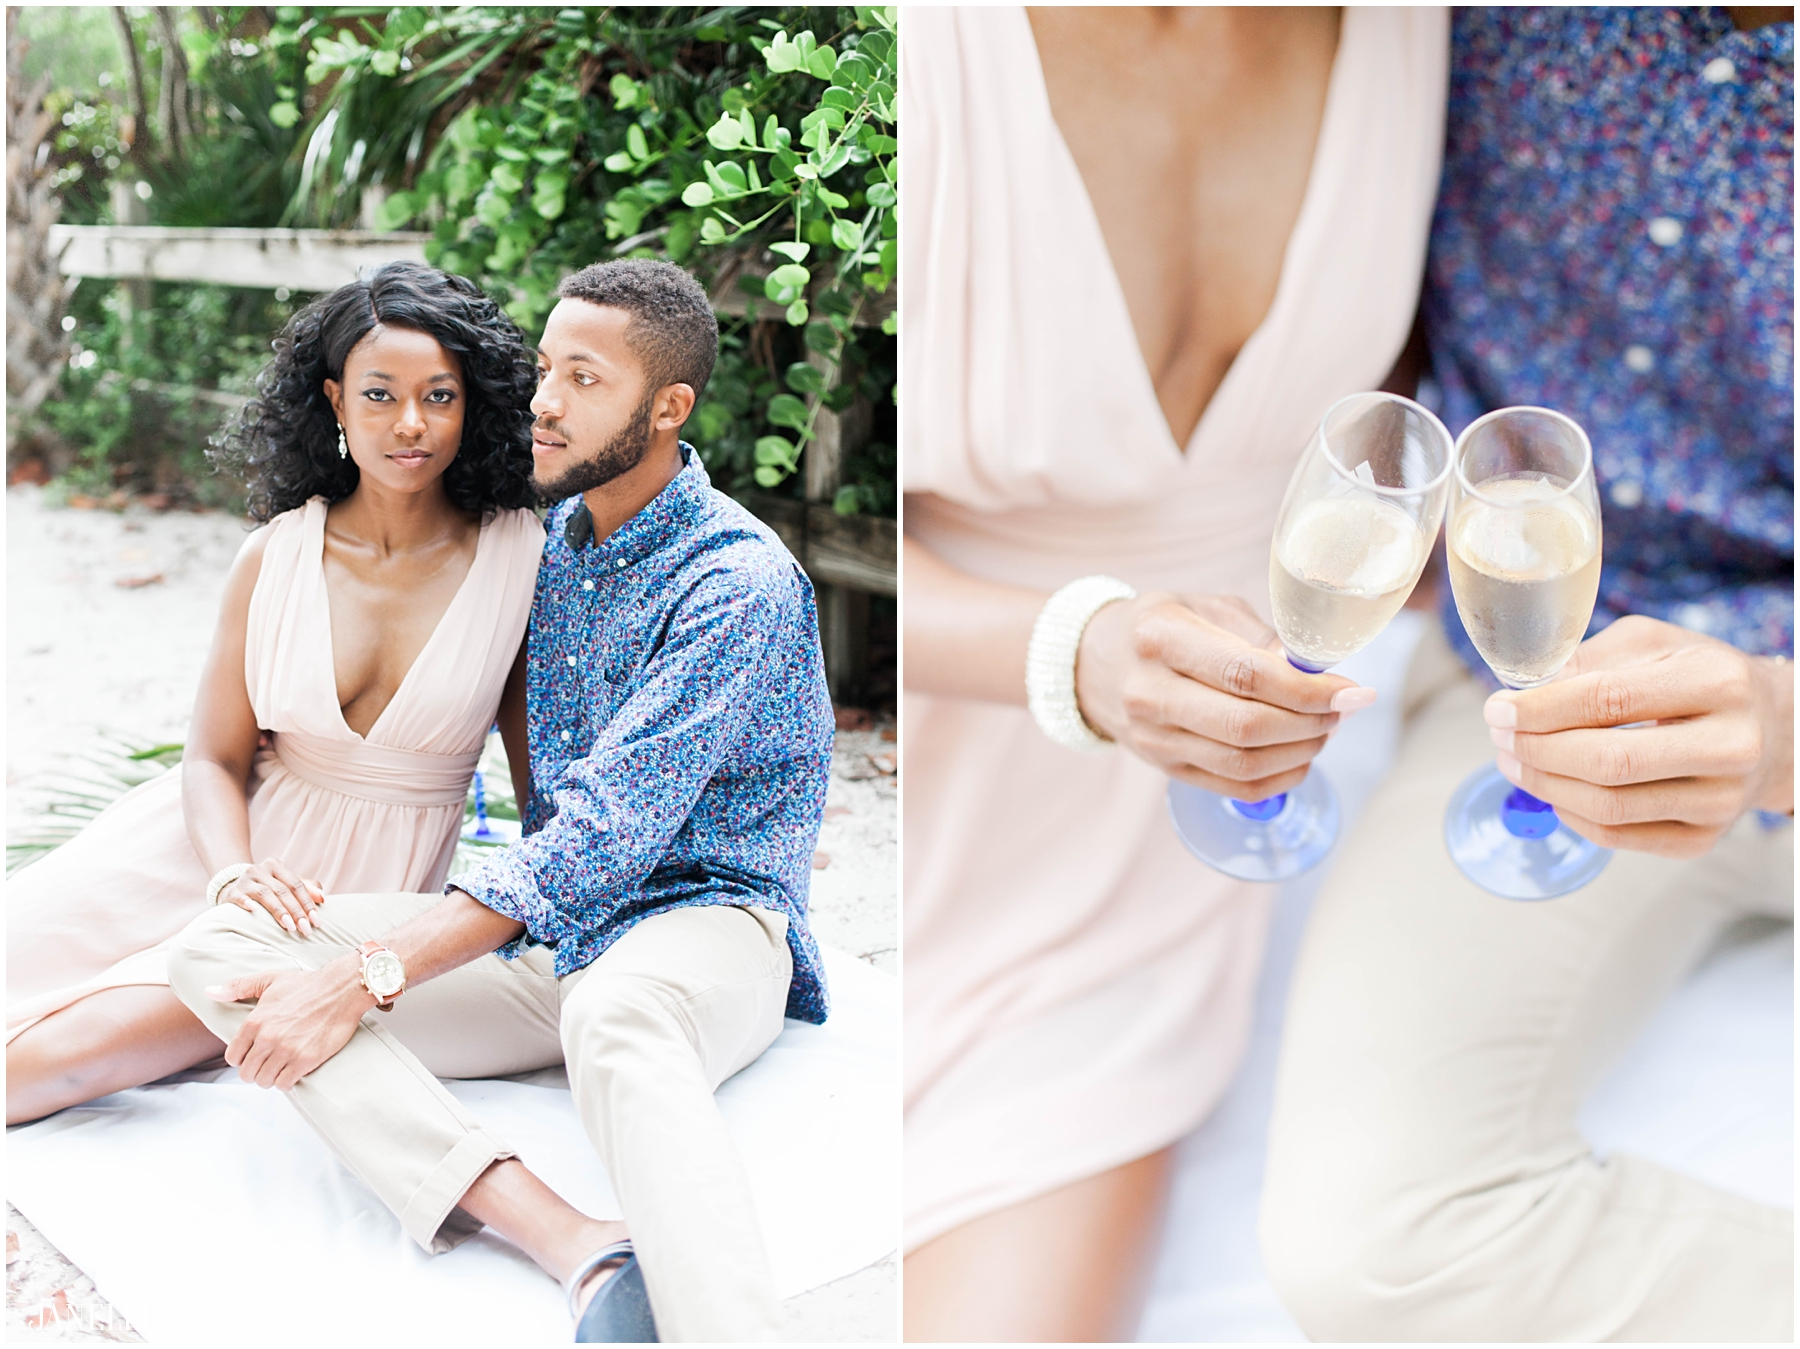 Miami Wedding Photographer - Beach Engagement - Janelle C Photography_001